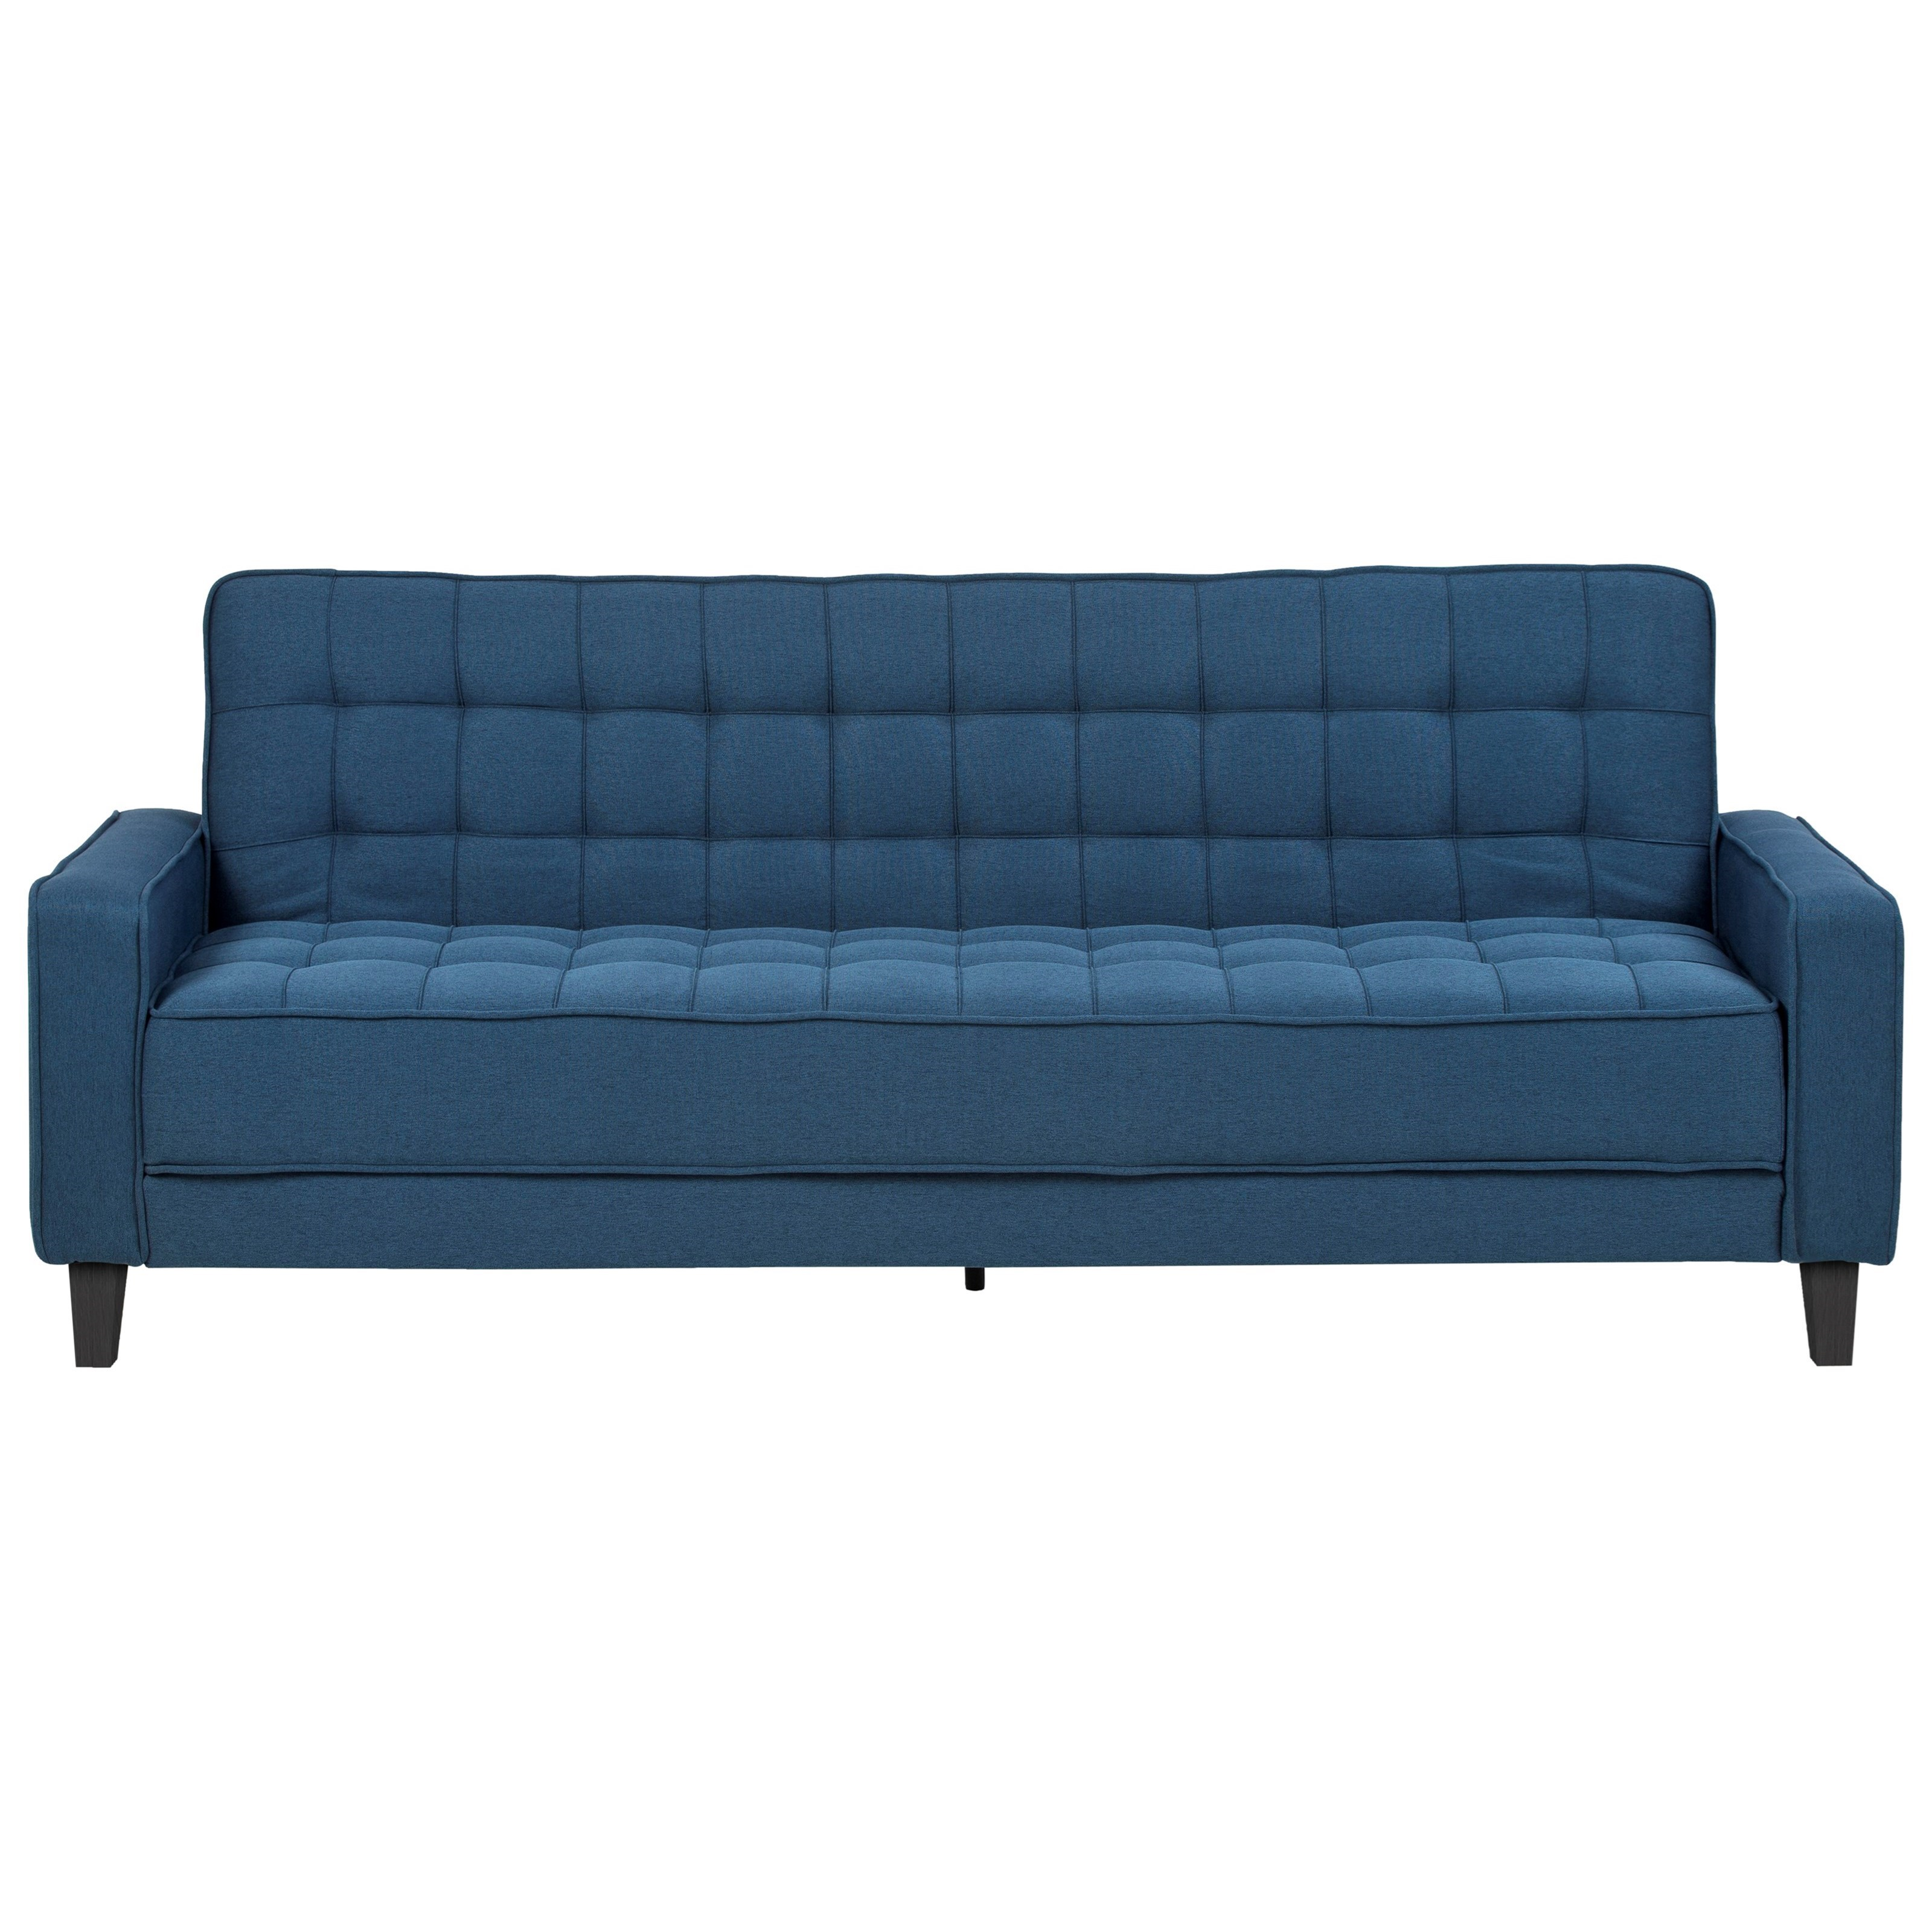 sofa beds denver co in los angeles actona bed home the honoroak